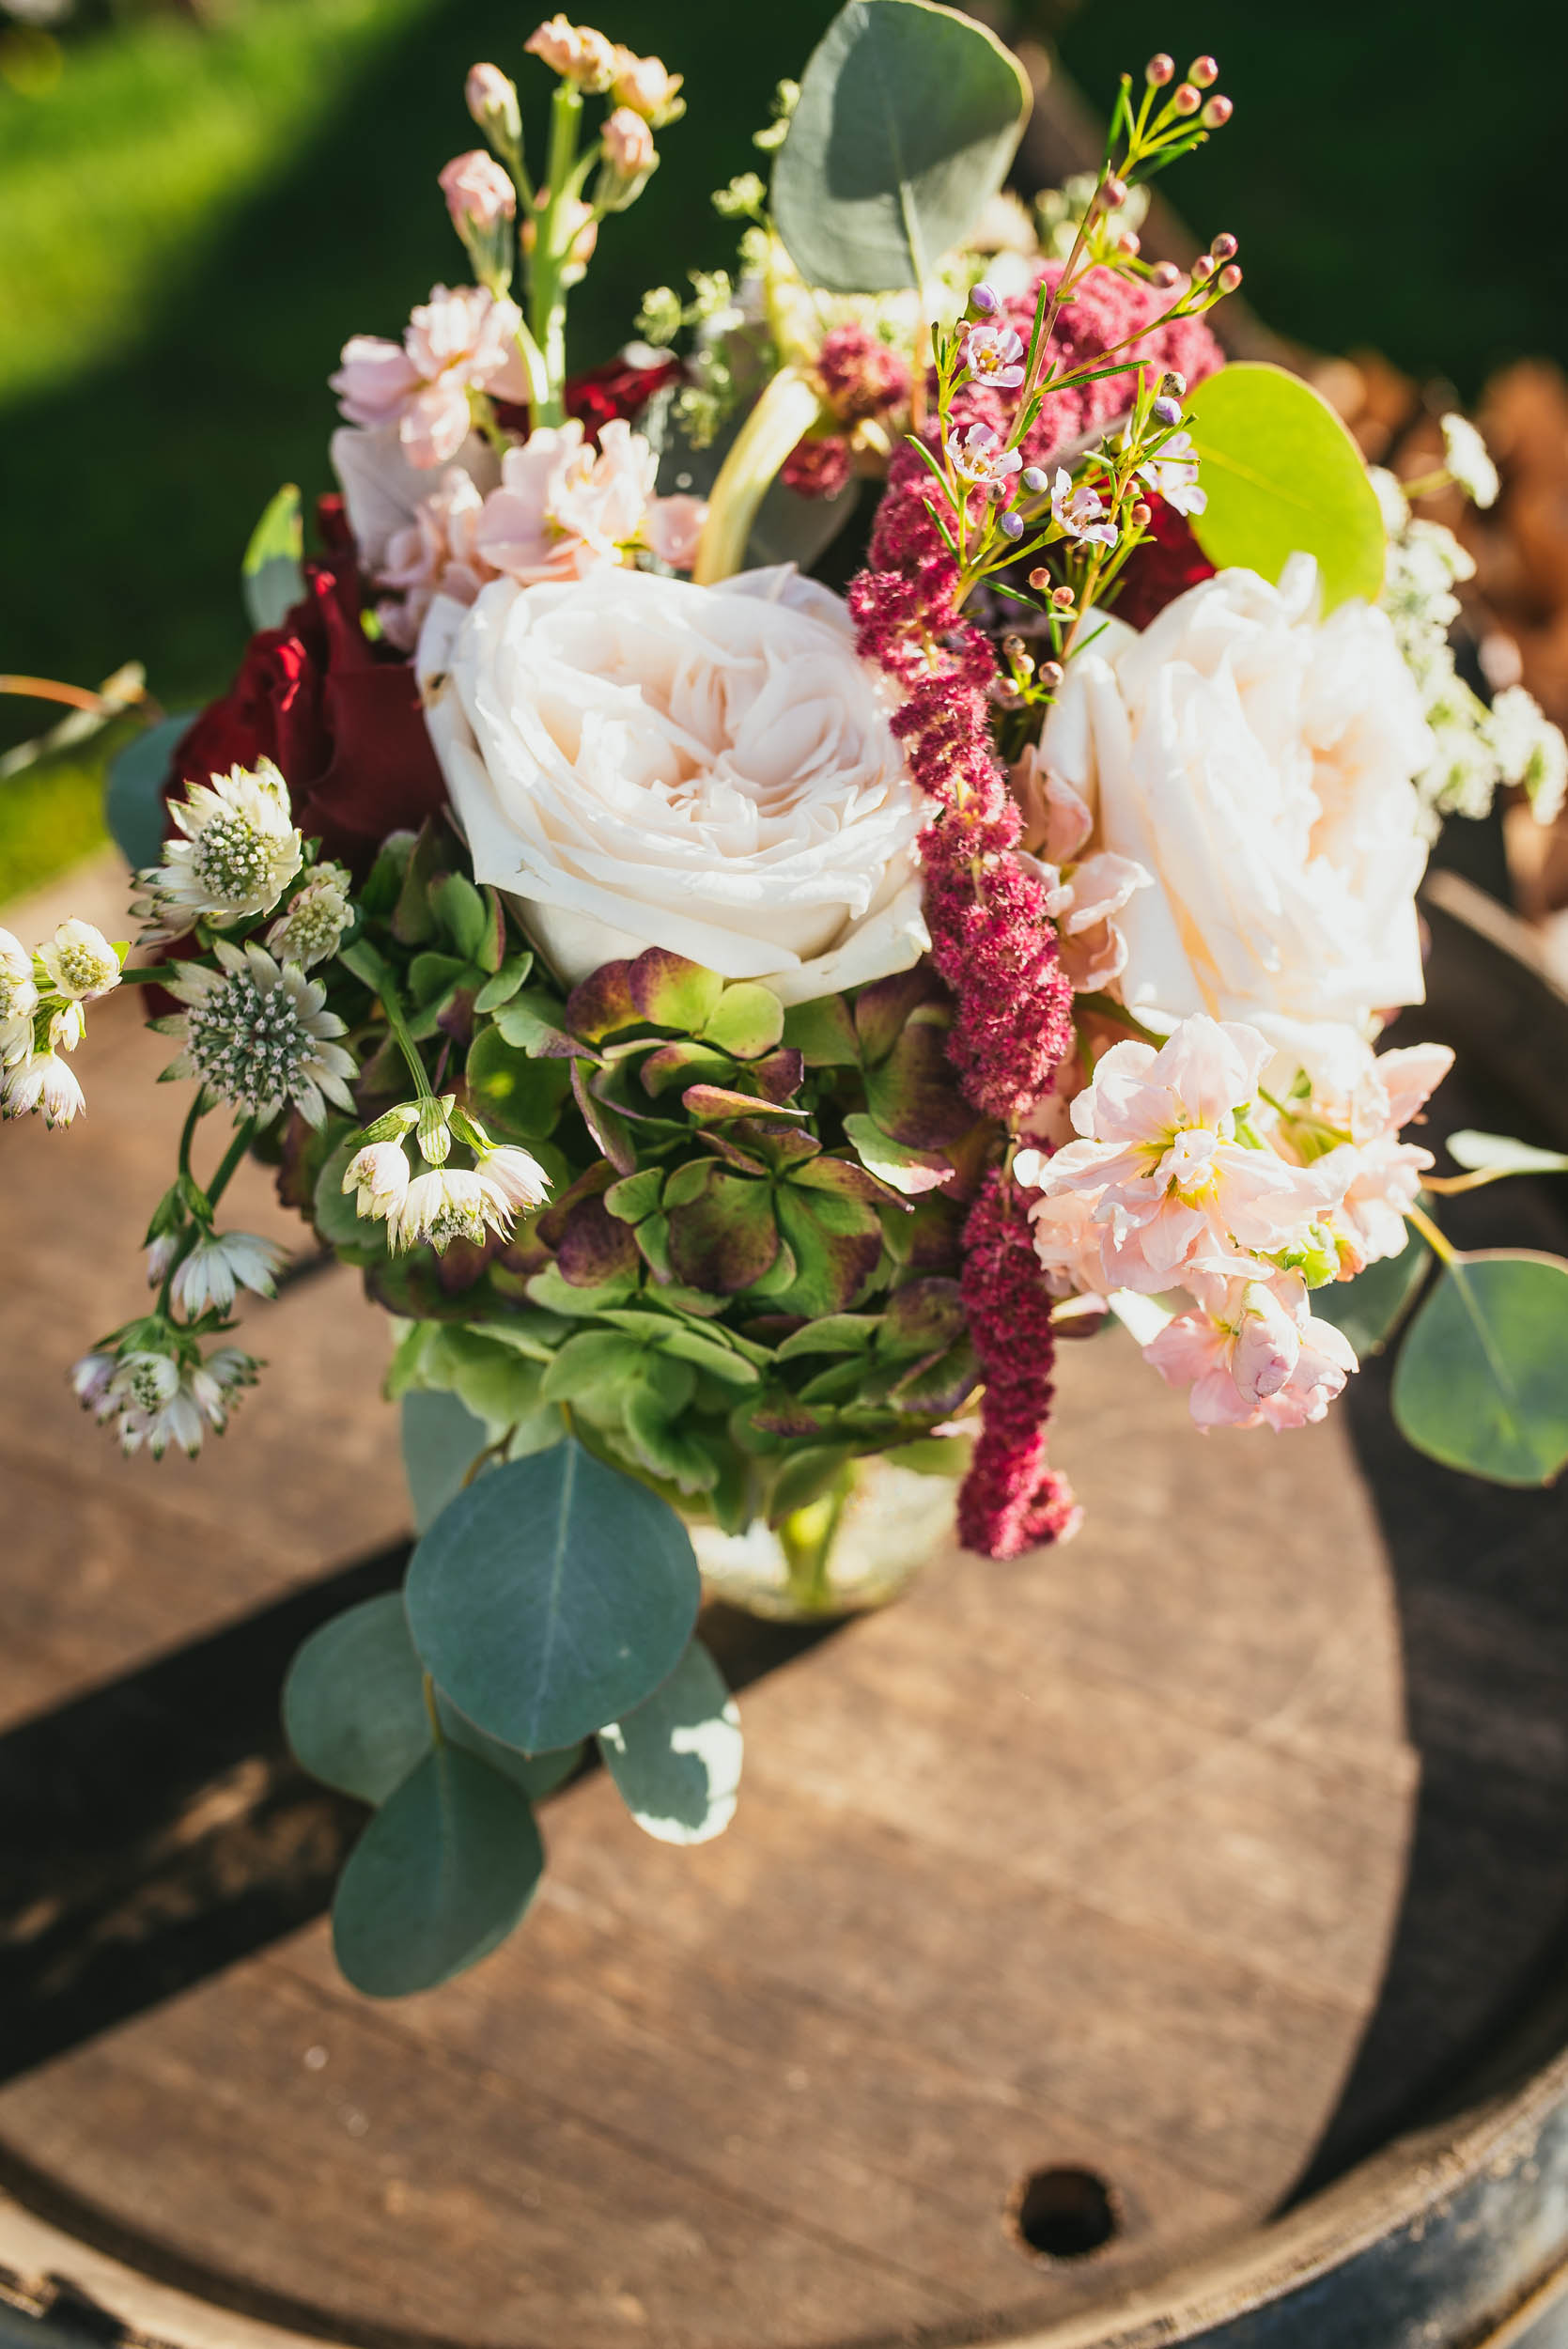 hengstenbergs-florist-kate-andrew-©in-focus-nyc-photography-05.jpg